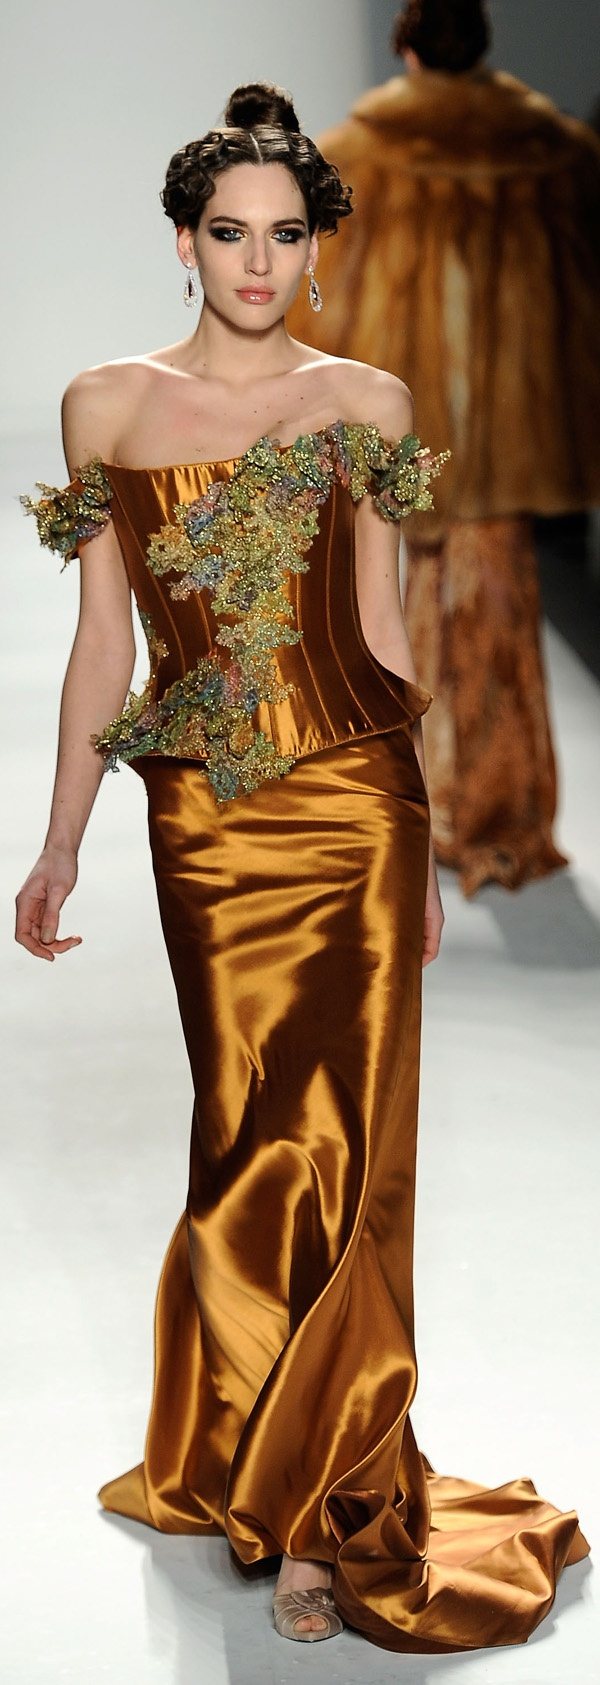 ❈ Venexiana NY Mercedes Benz Fashion Week 2012 ❈ http://www.epochtimes.com.ua/ru/fashion/shows/osen-2012-ot-venexiana--101522.html